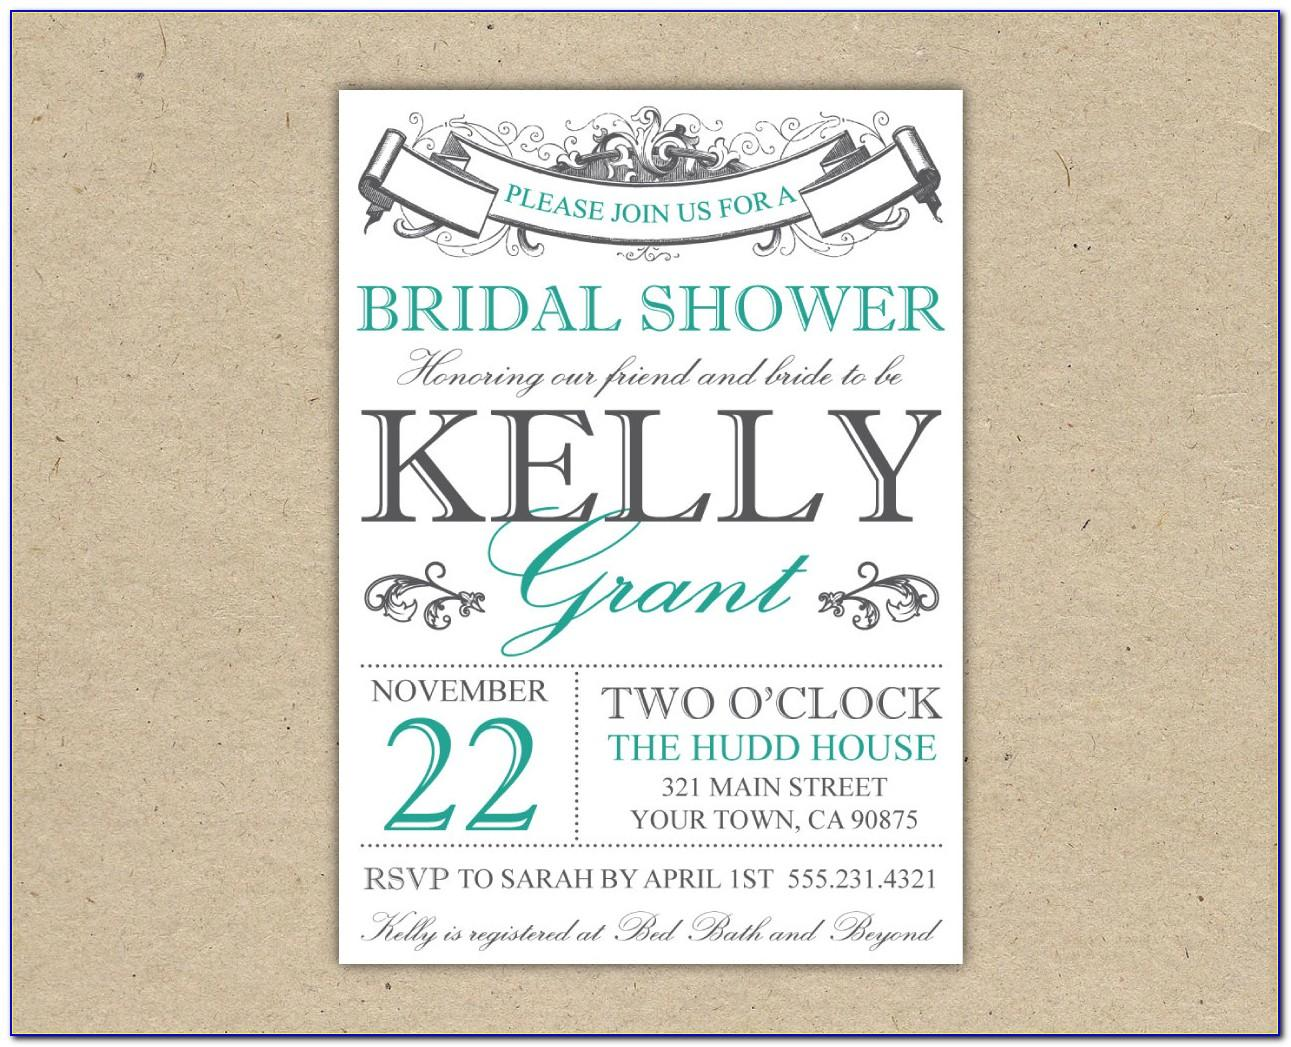 Bridal Shower Invitation Templates Free For Word